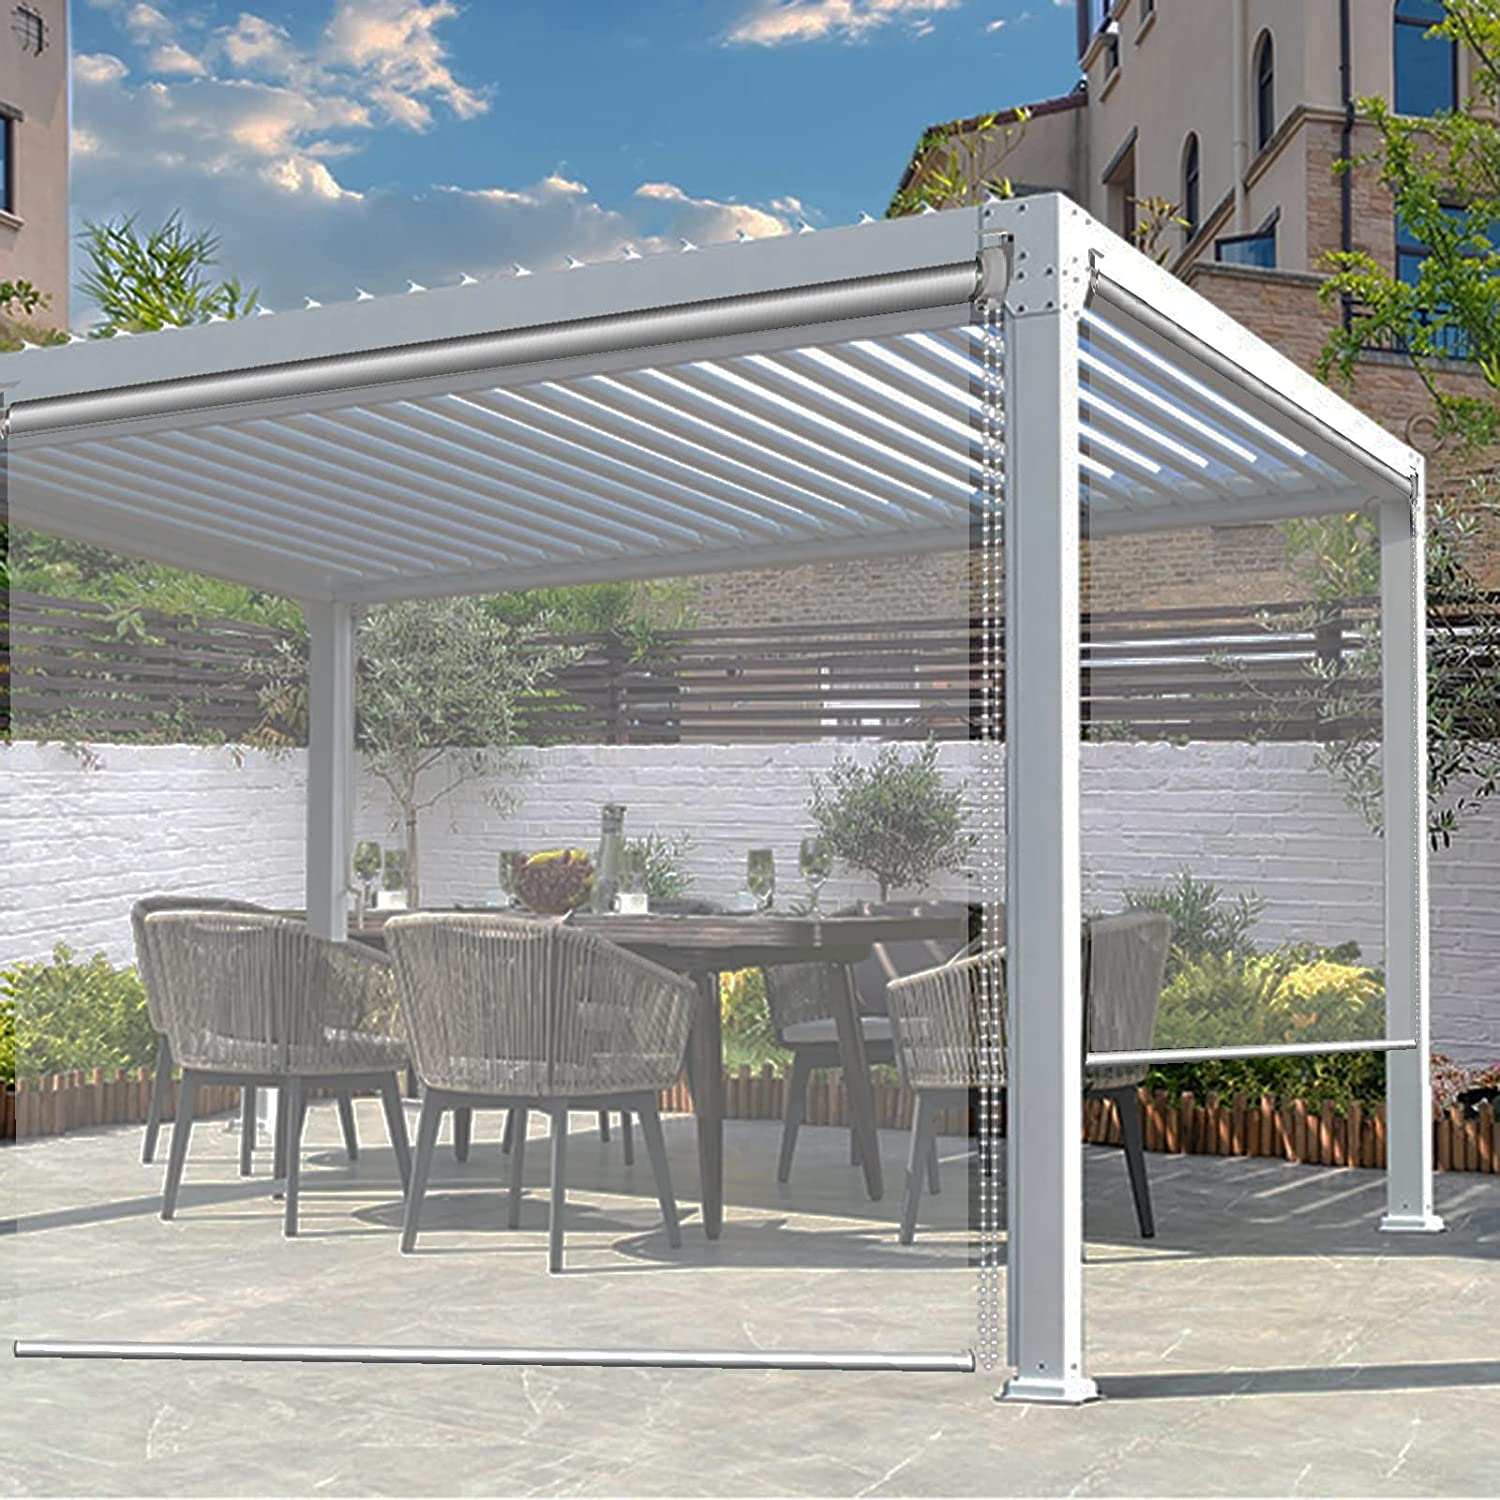 Outdoor Patio Blinds with Fittings Clear Shade Free Ranking TOP1 shipping anywhere in the nation Roller Exterior